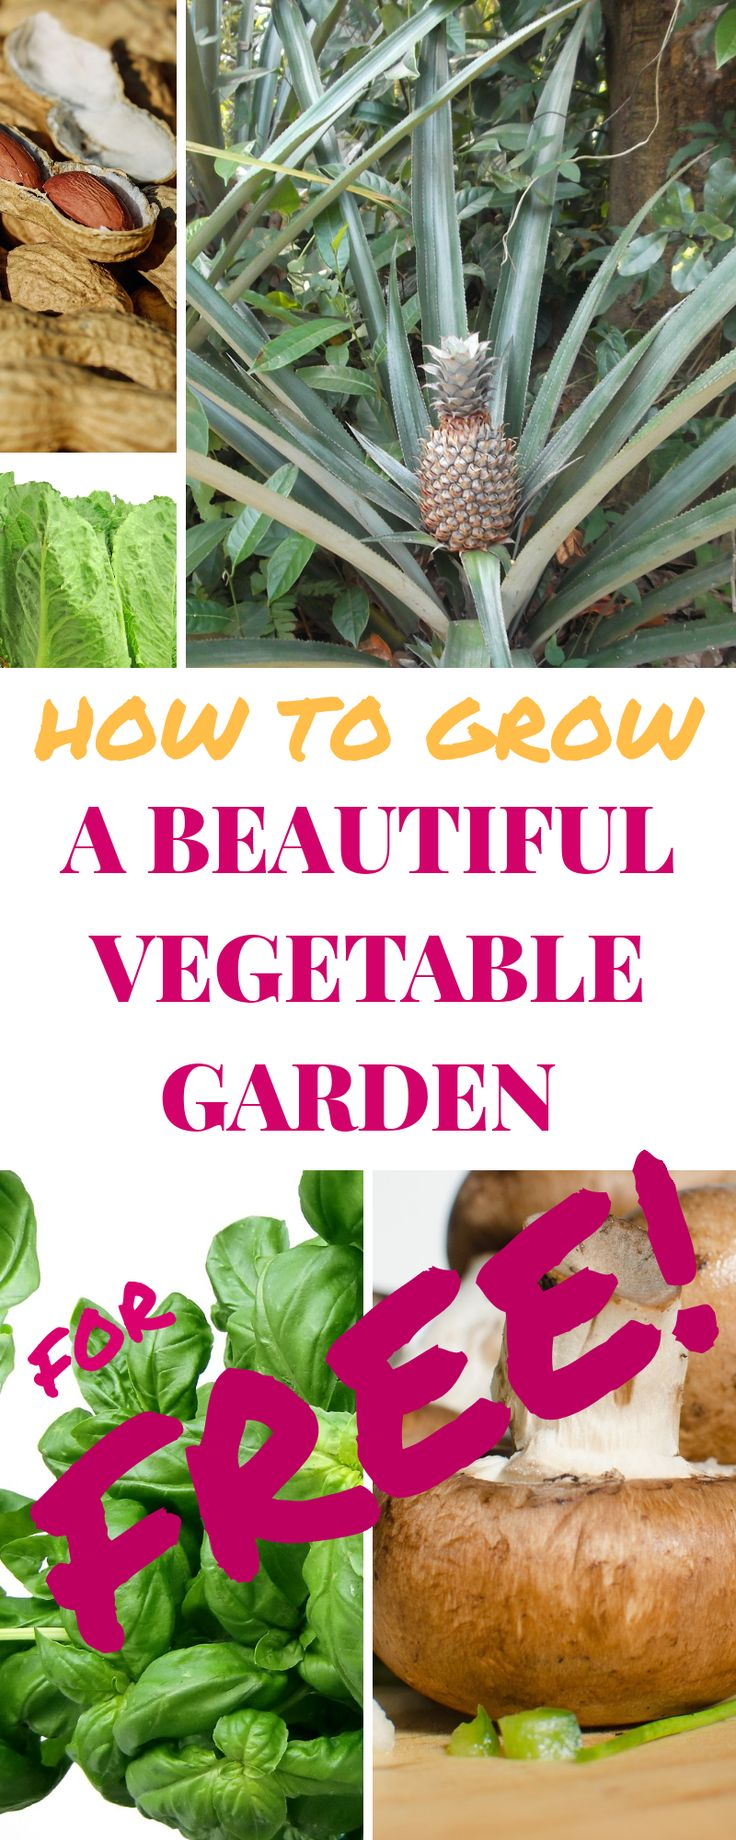 How ToCreate A Beautiful Vegetable Garden For FREE. If you take a minute and think you can use most of those little bits you throw away to benefit you and your family. I don't just mean using up your left over, although this is a great idea too. All you need to do is...